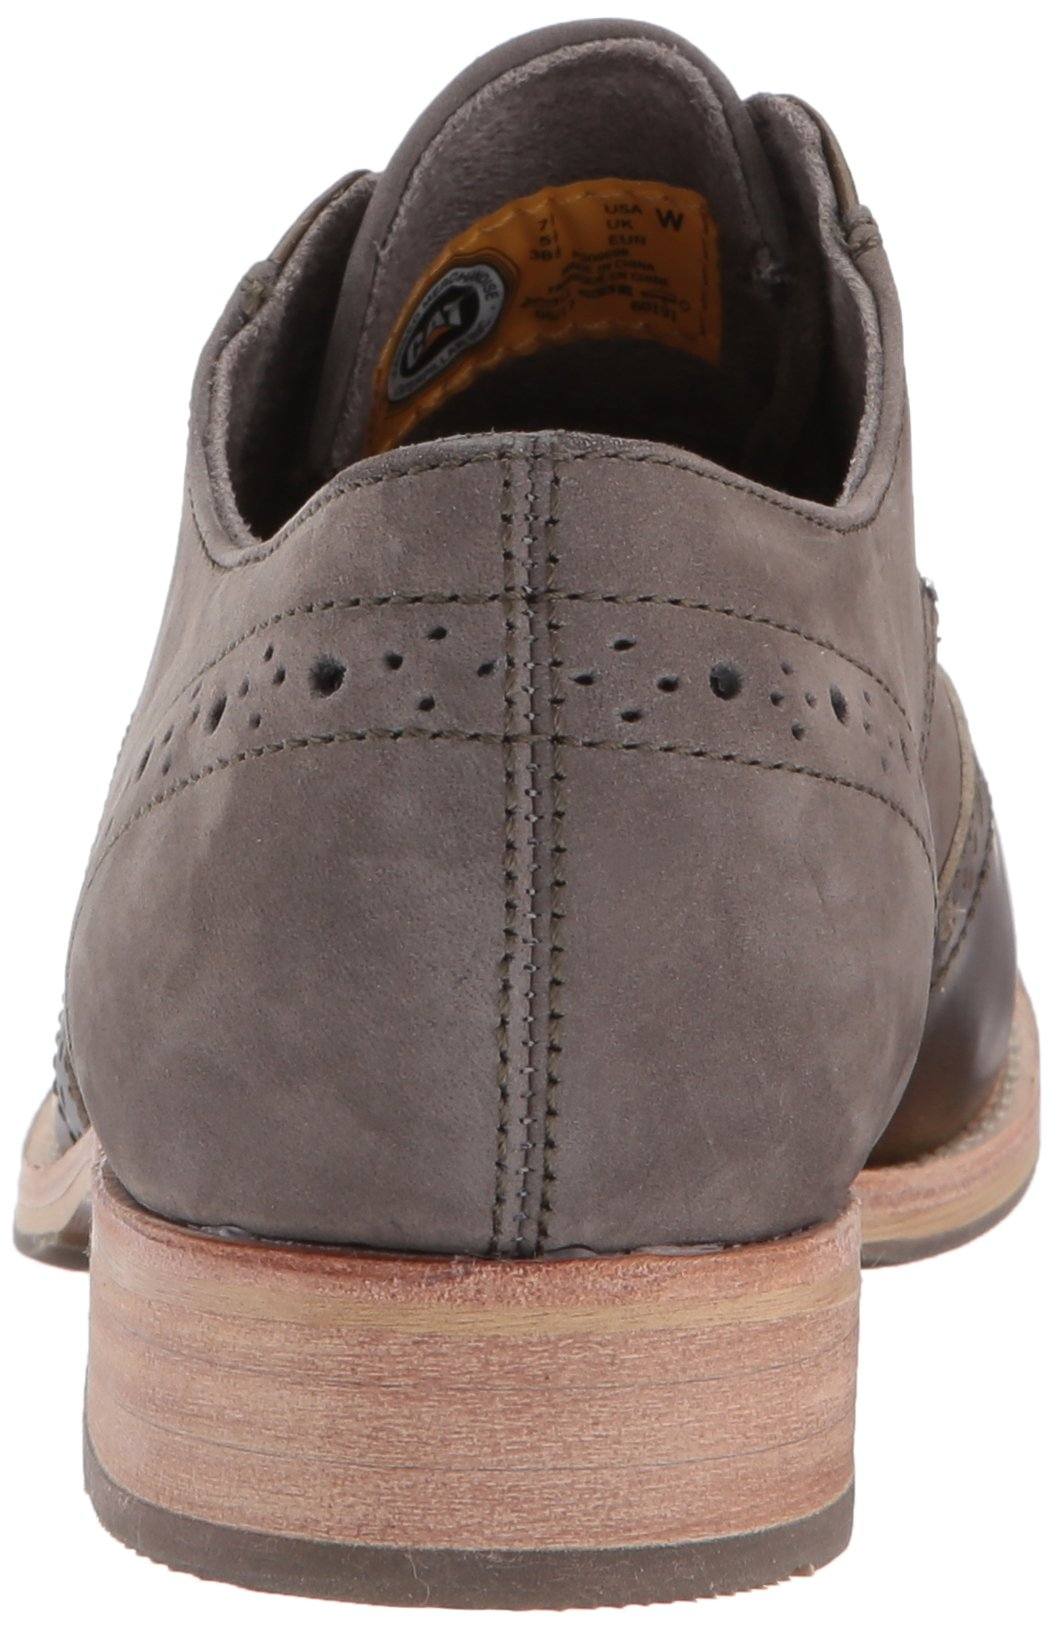 Caterpillar Women's Reegan II Lace up Leather Oxford, Olive, 5.5 Medium US by Caterpillar (Image #2)